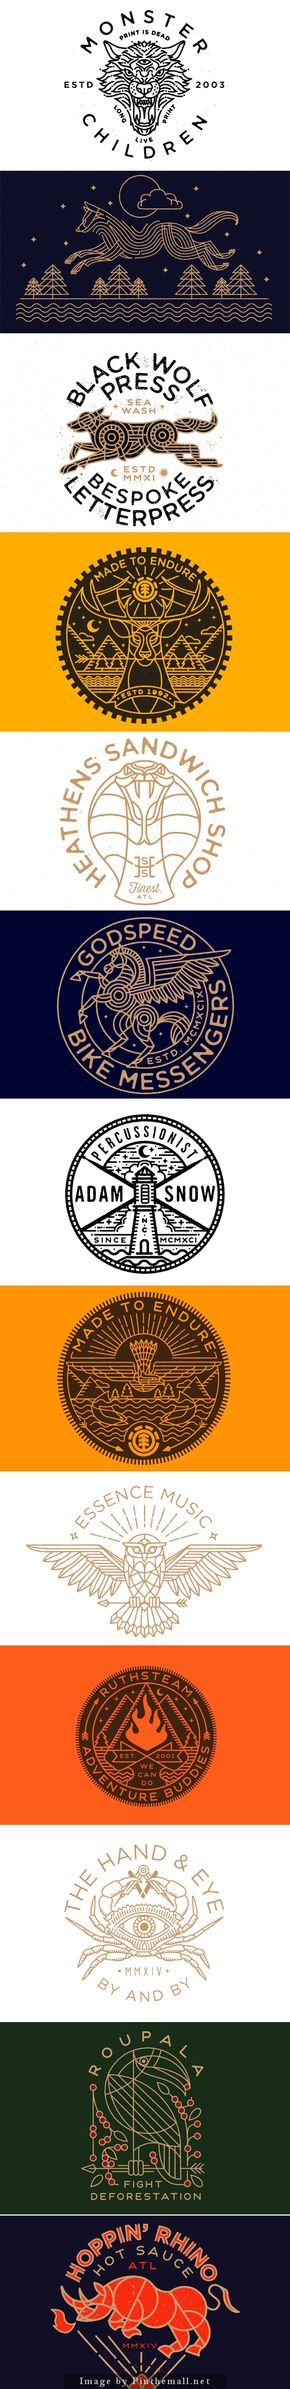 Logo designs by Brian Steely